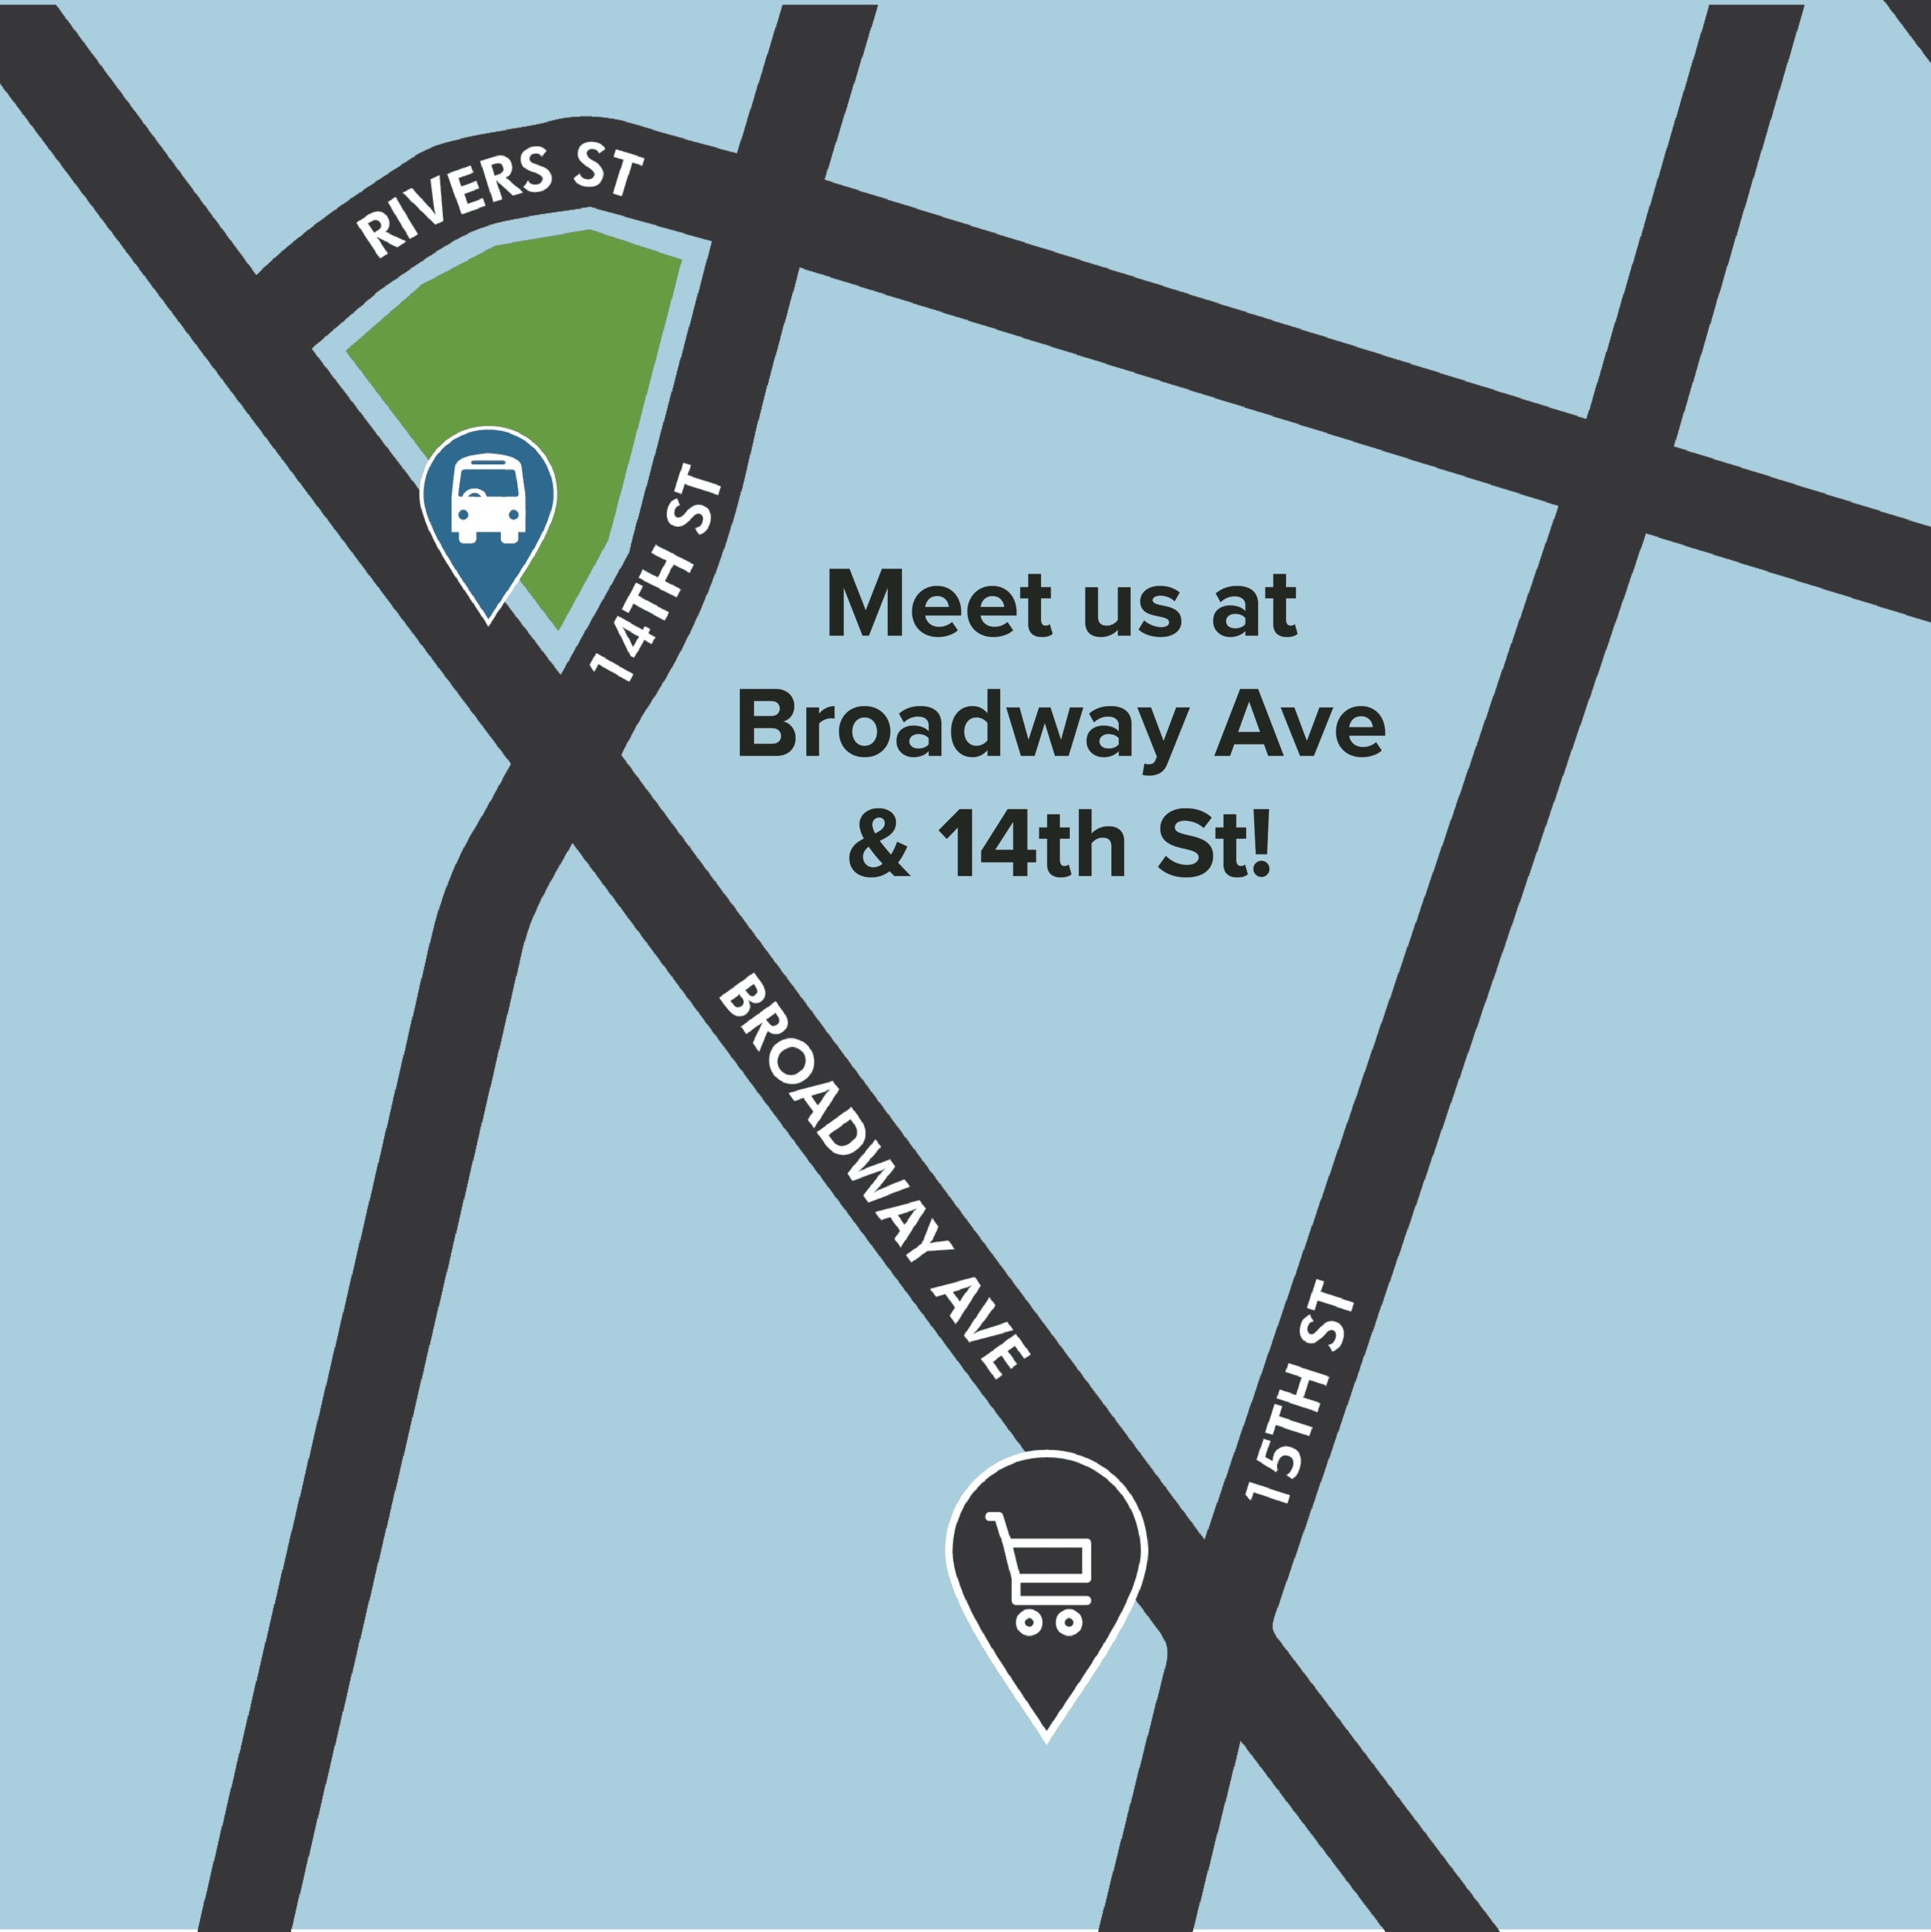 Demonstration map: Meet us at Broadway Ave & 14th St!